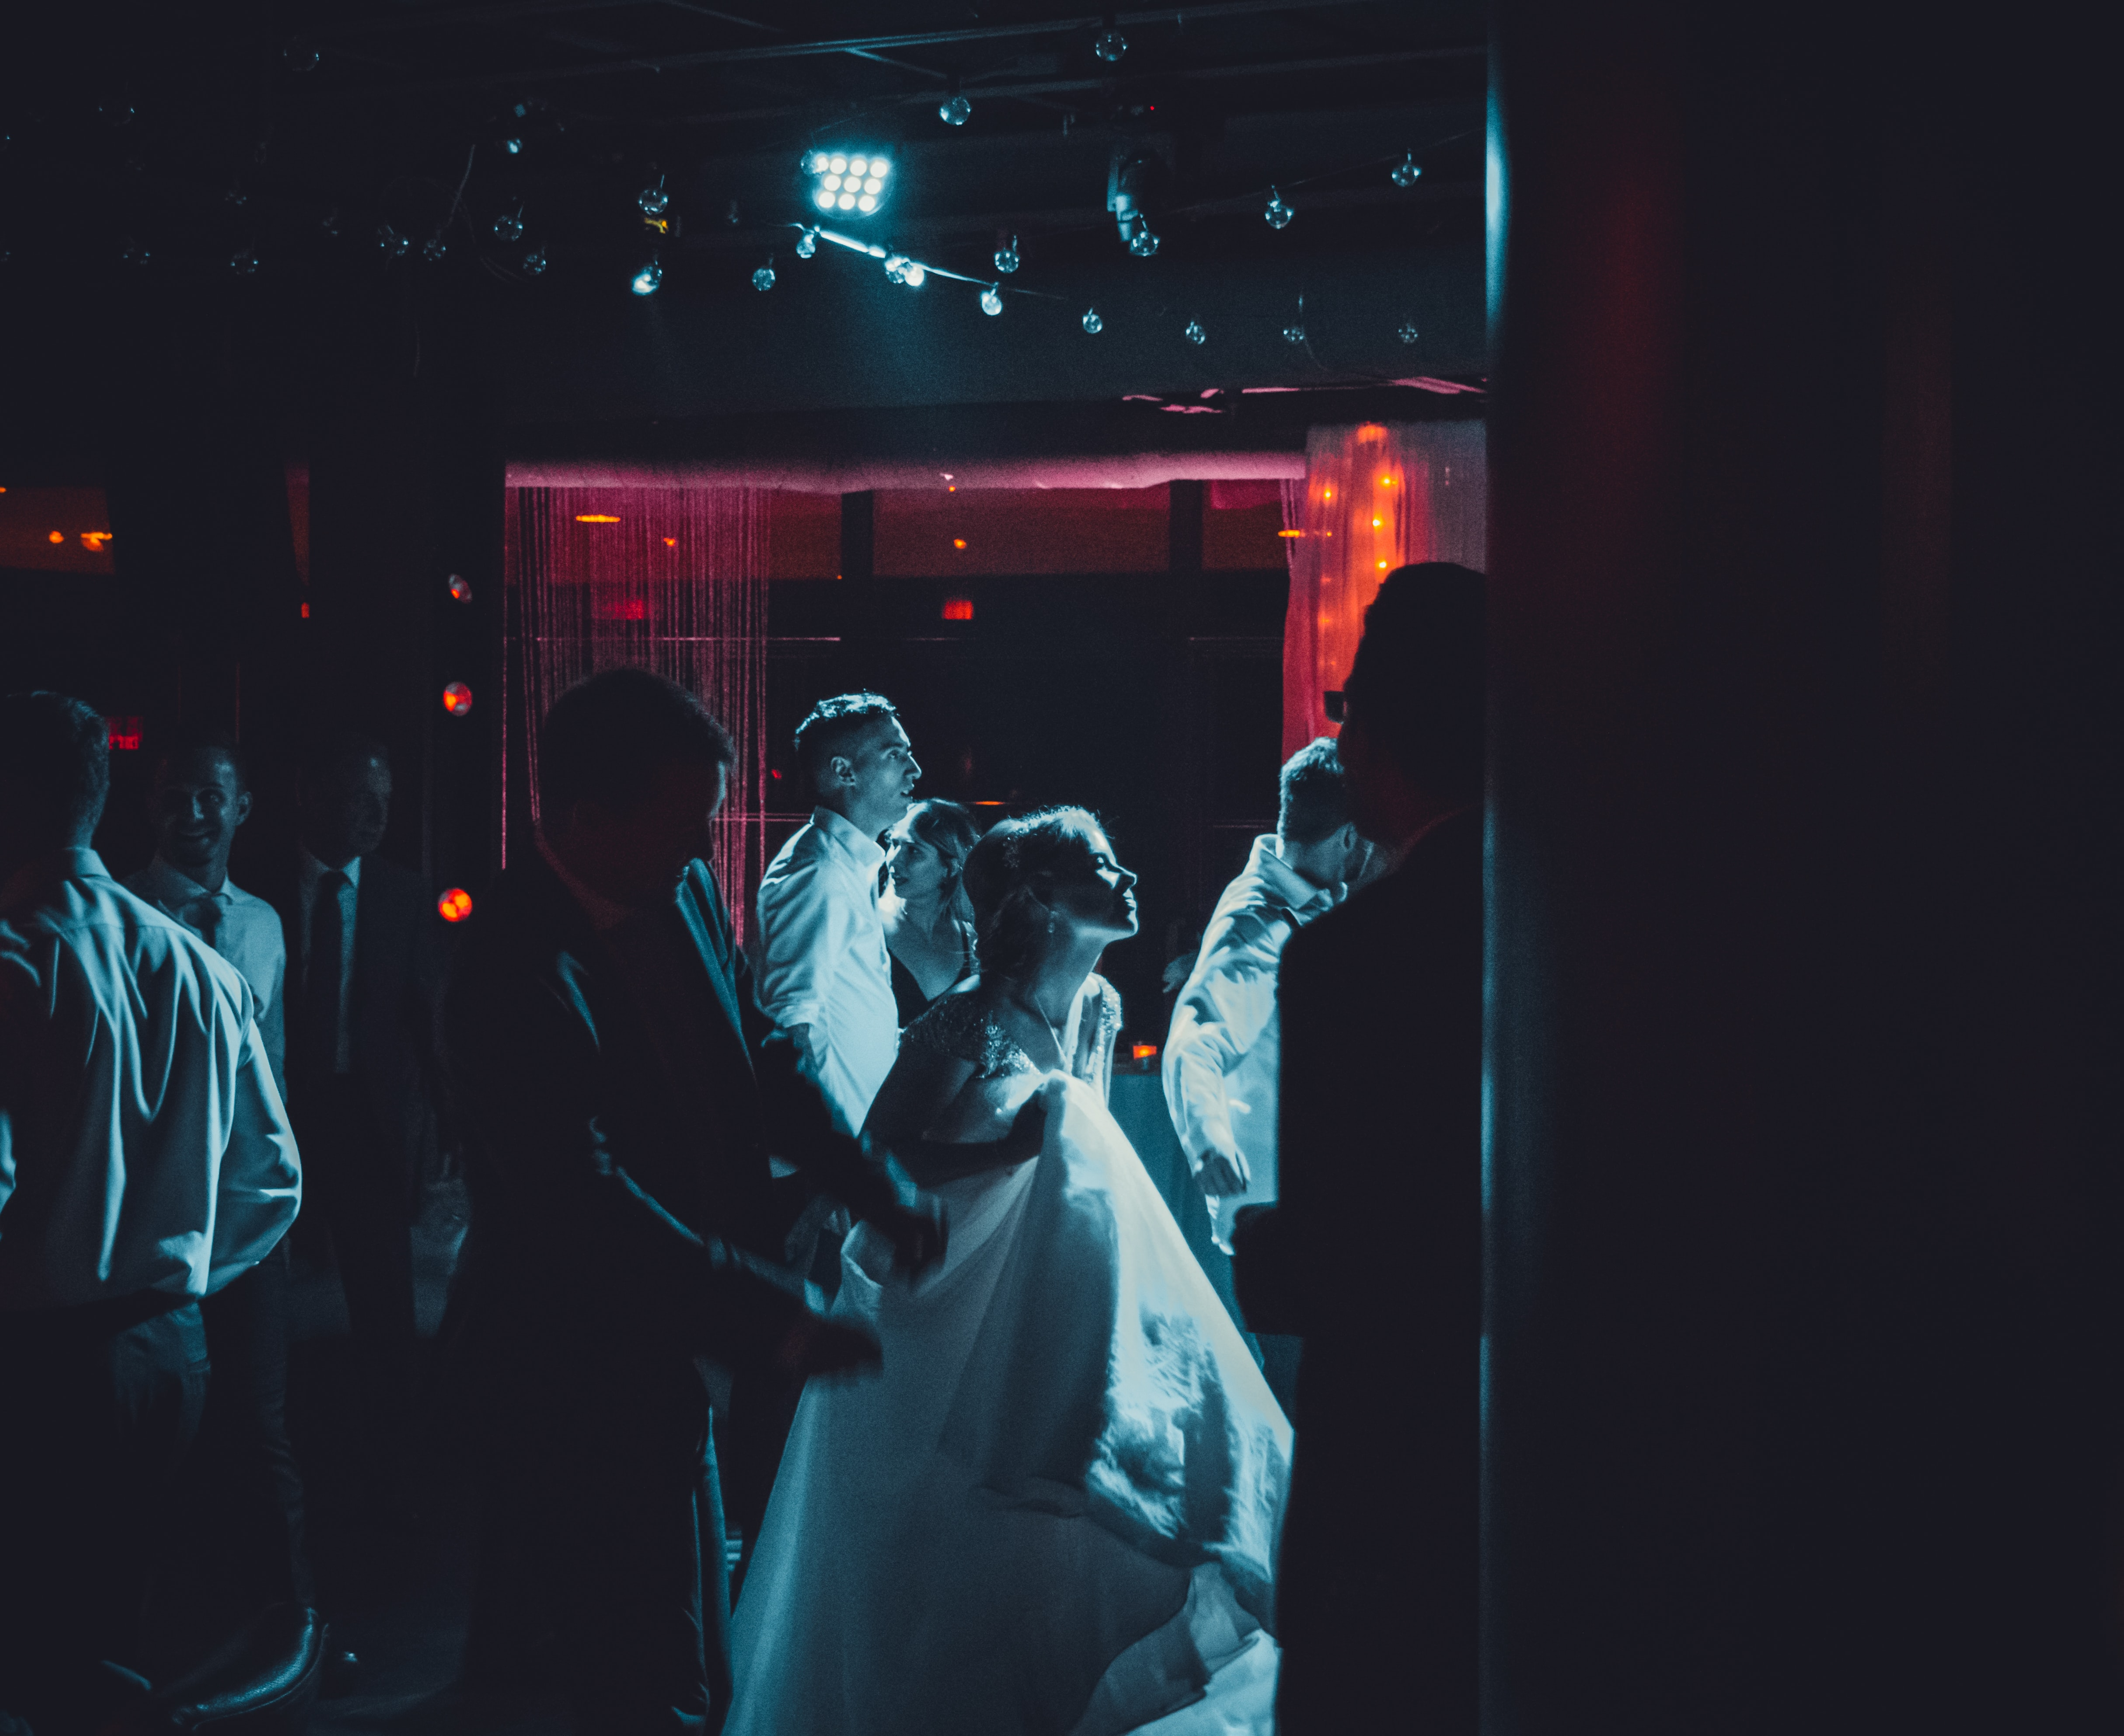 woman wearing white dress surrounded by people inside building